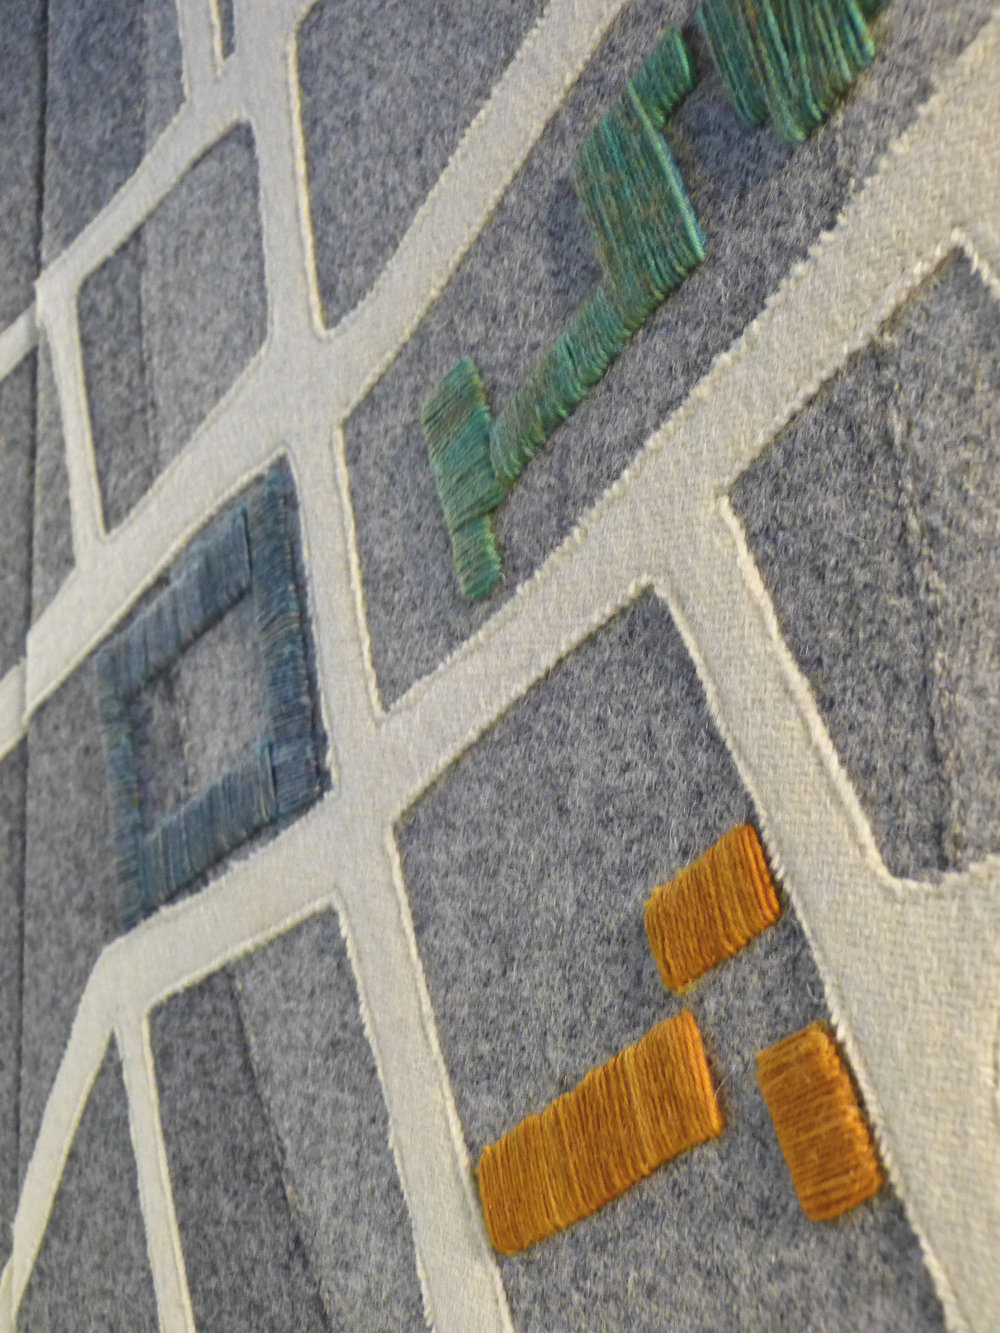 detail of central panel: significant buildings, hand embroidered